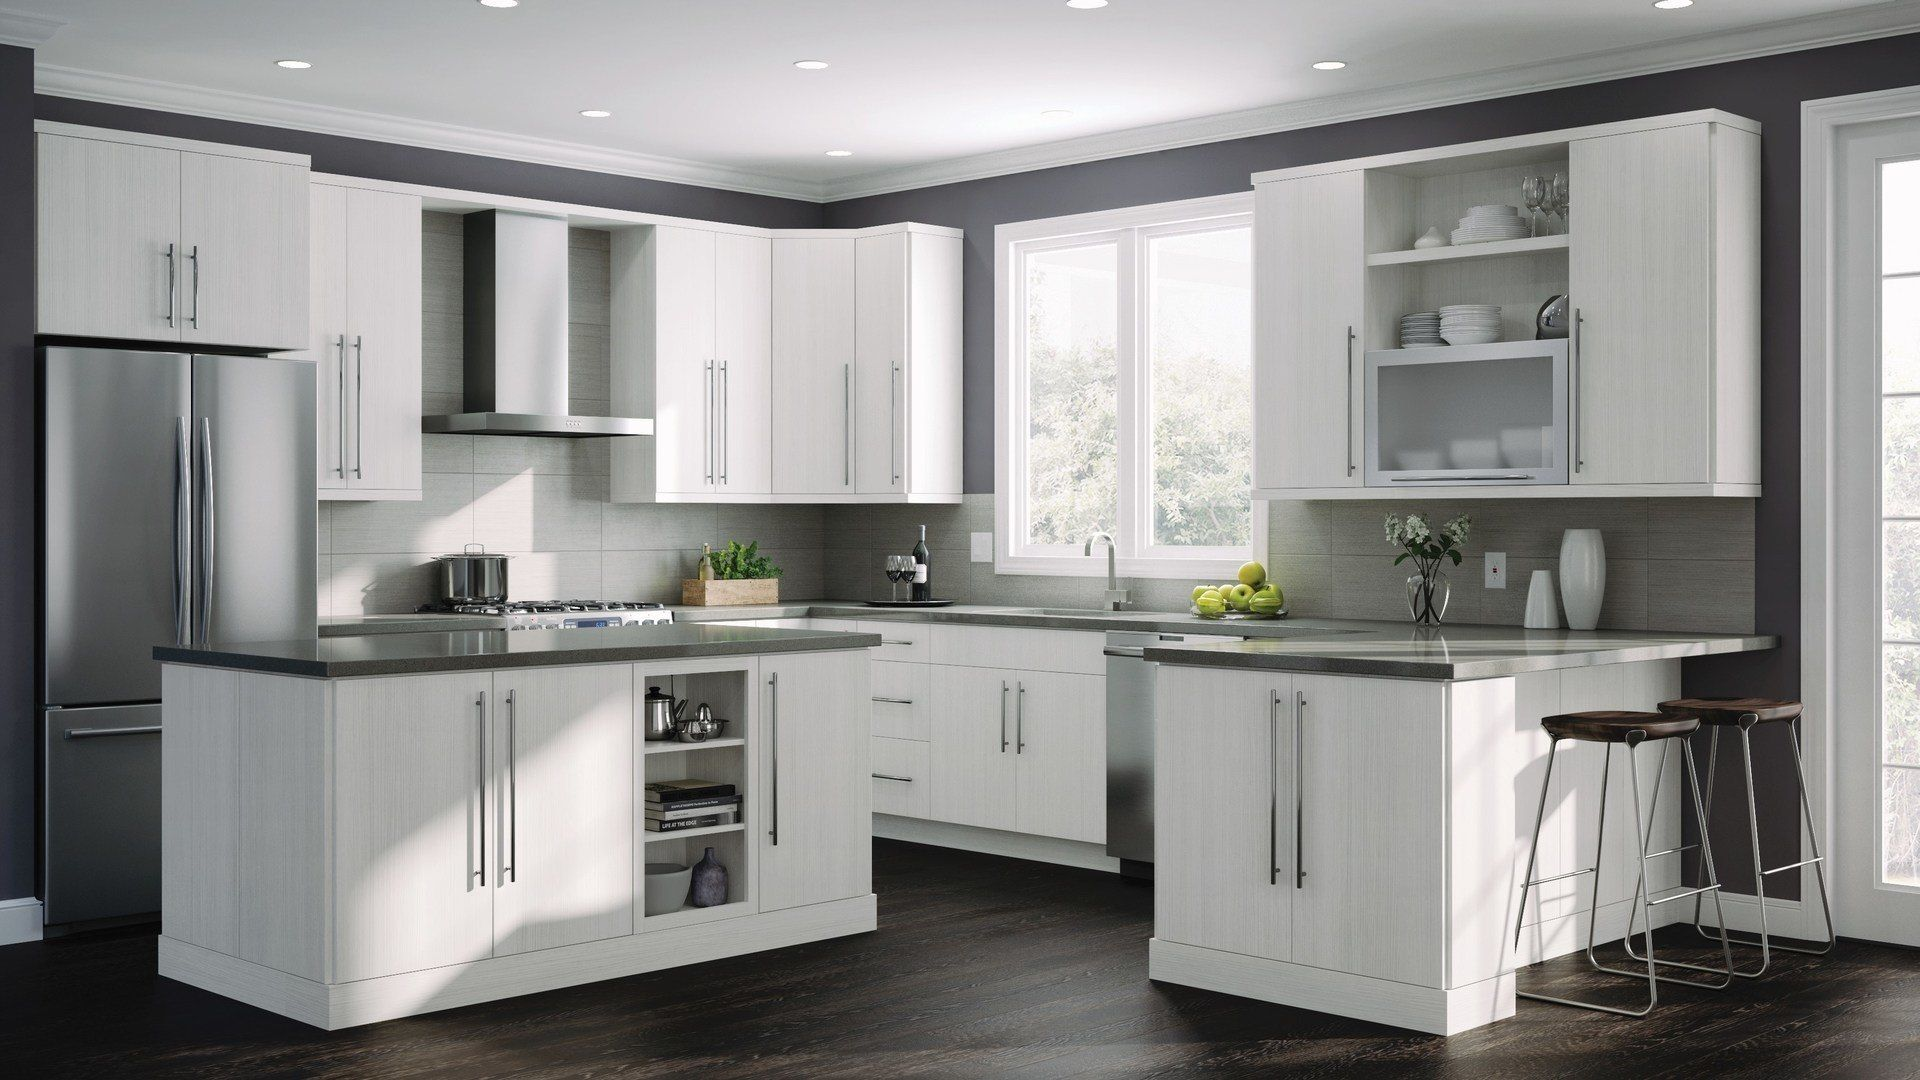 Shop Our Kitchen Cabinets Department To Customize Your Edgeley Wall Cabinets In Glacier Today Tiny Kitchen Design Interior Design Kitchen Grey Kitchen Interior